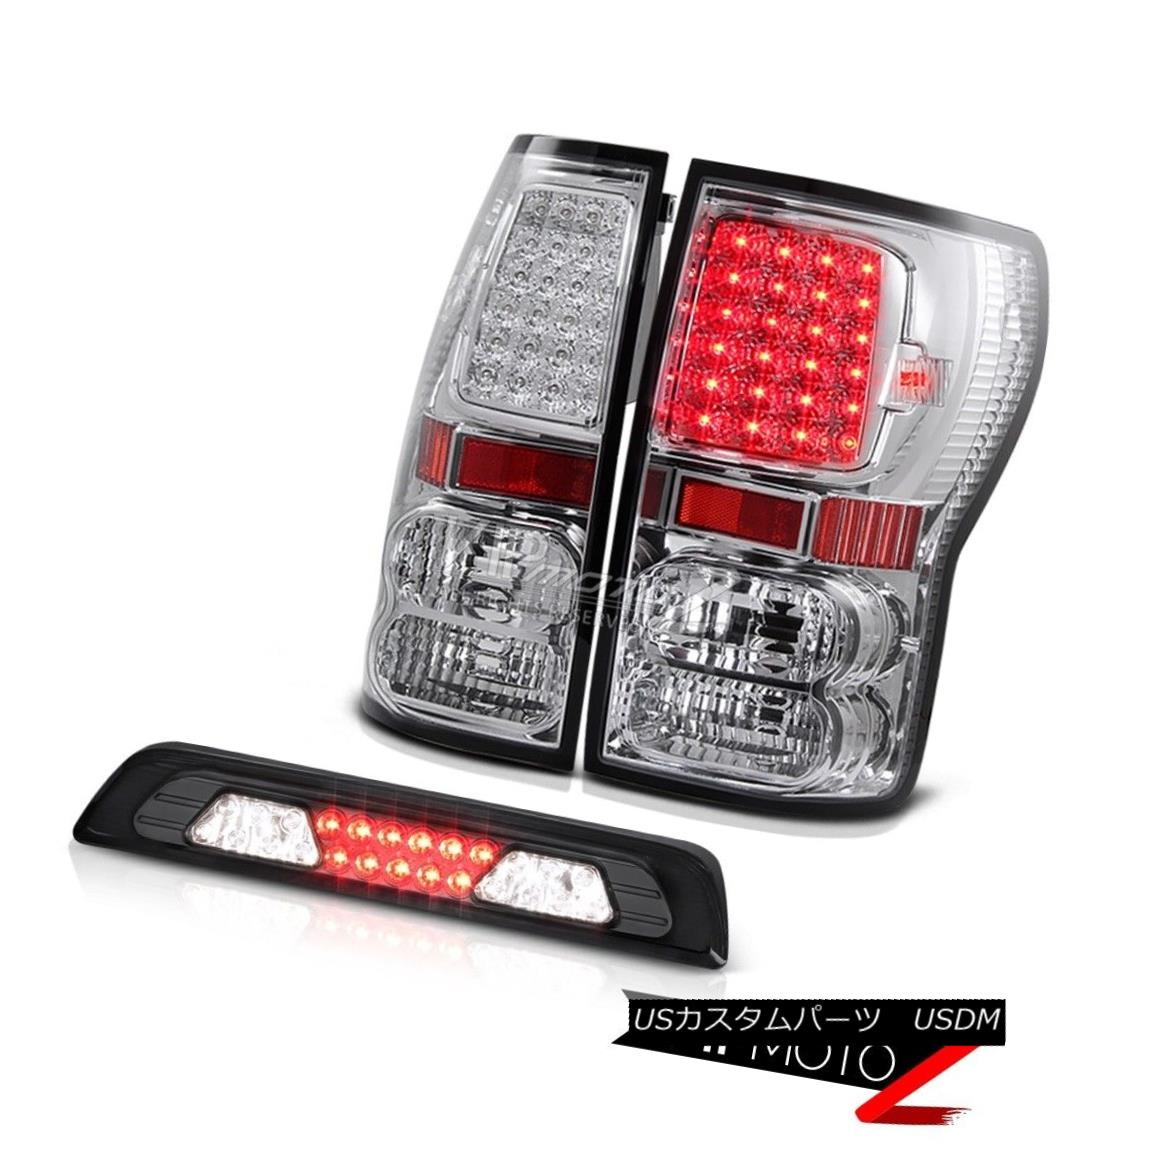 テールライト 2007-2013 Toyota Tundra SR5 Smokey Roof Cab Lamp Tail Lights LED